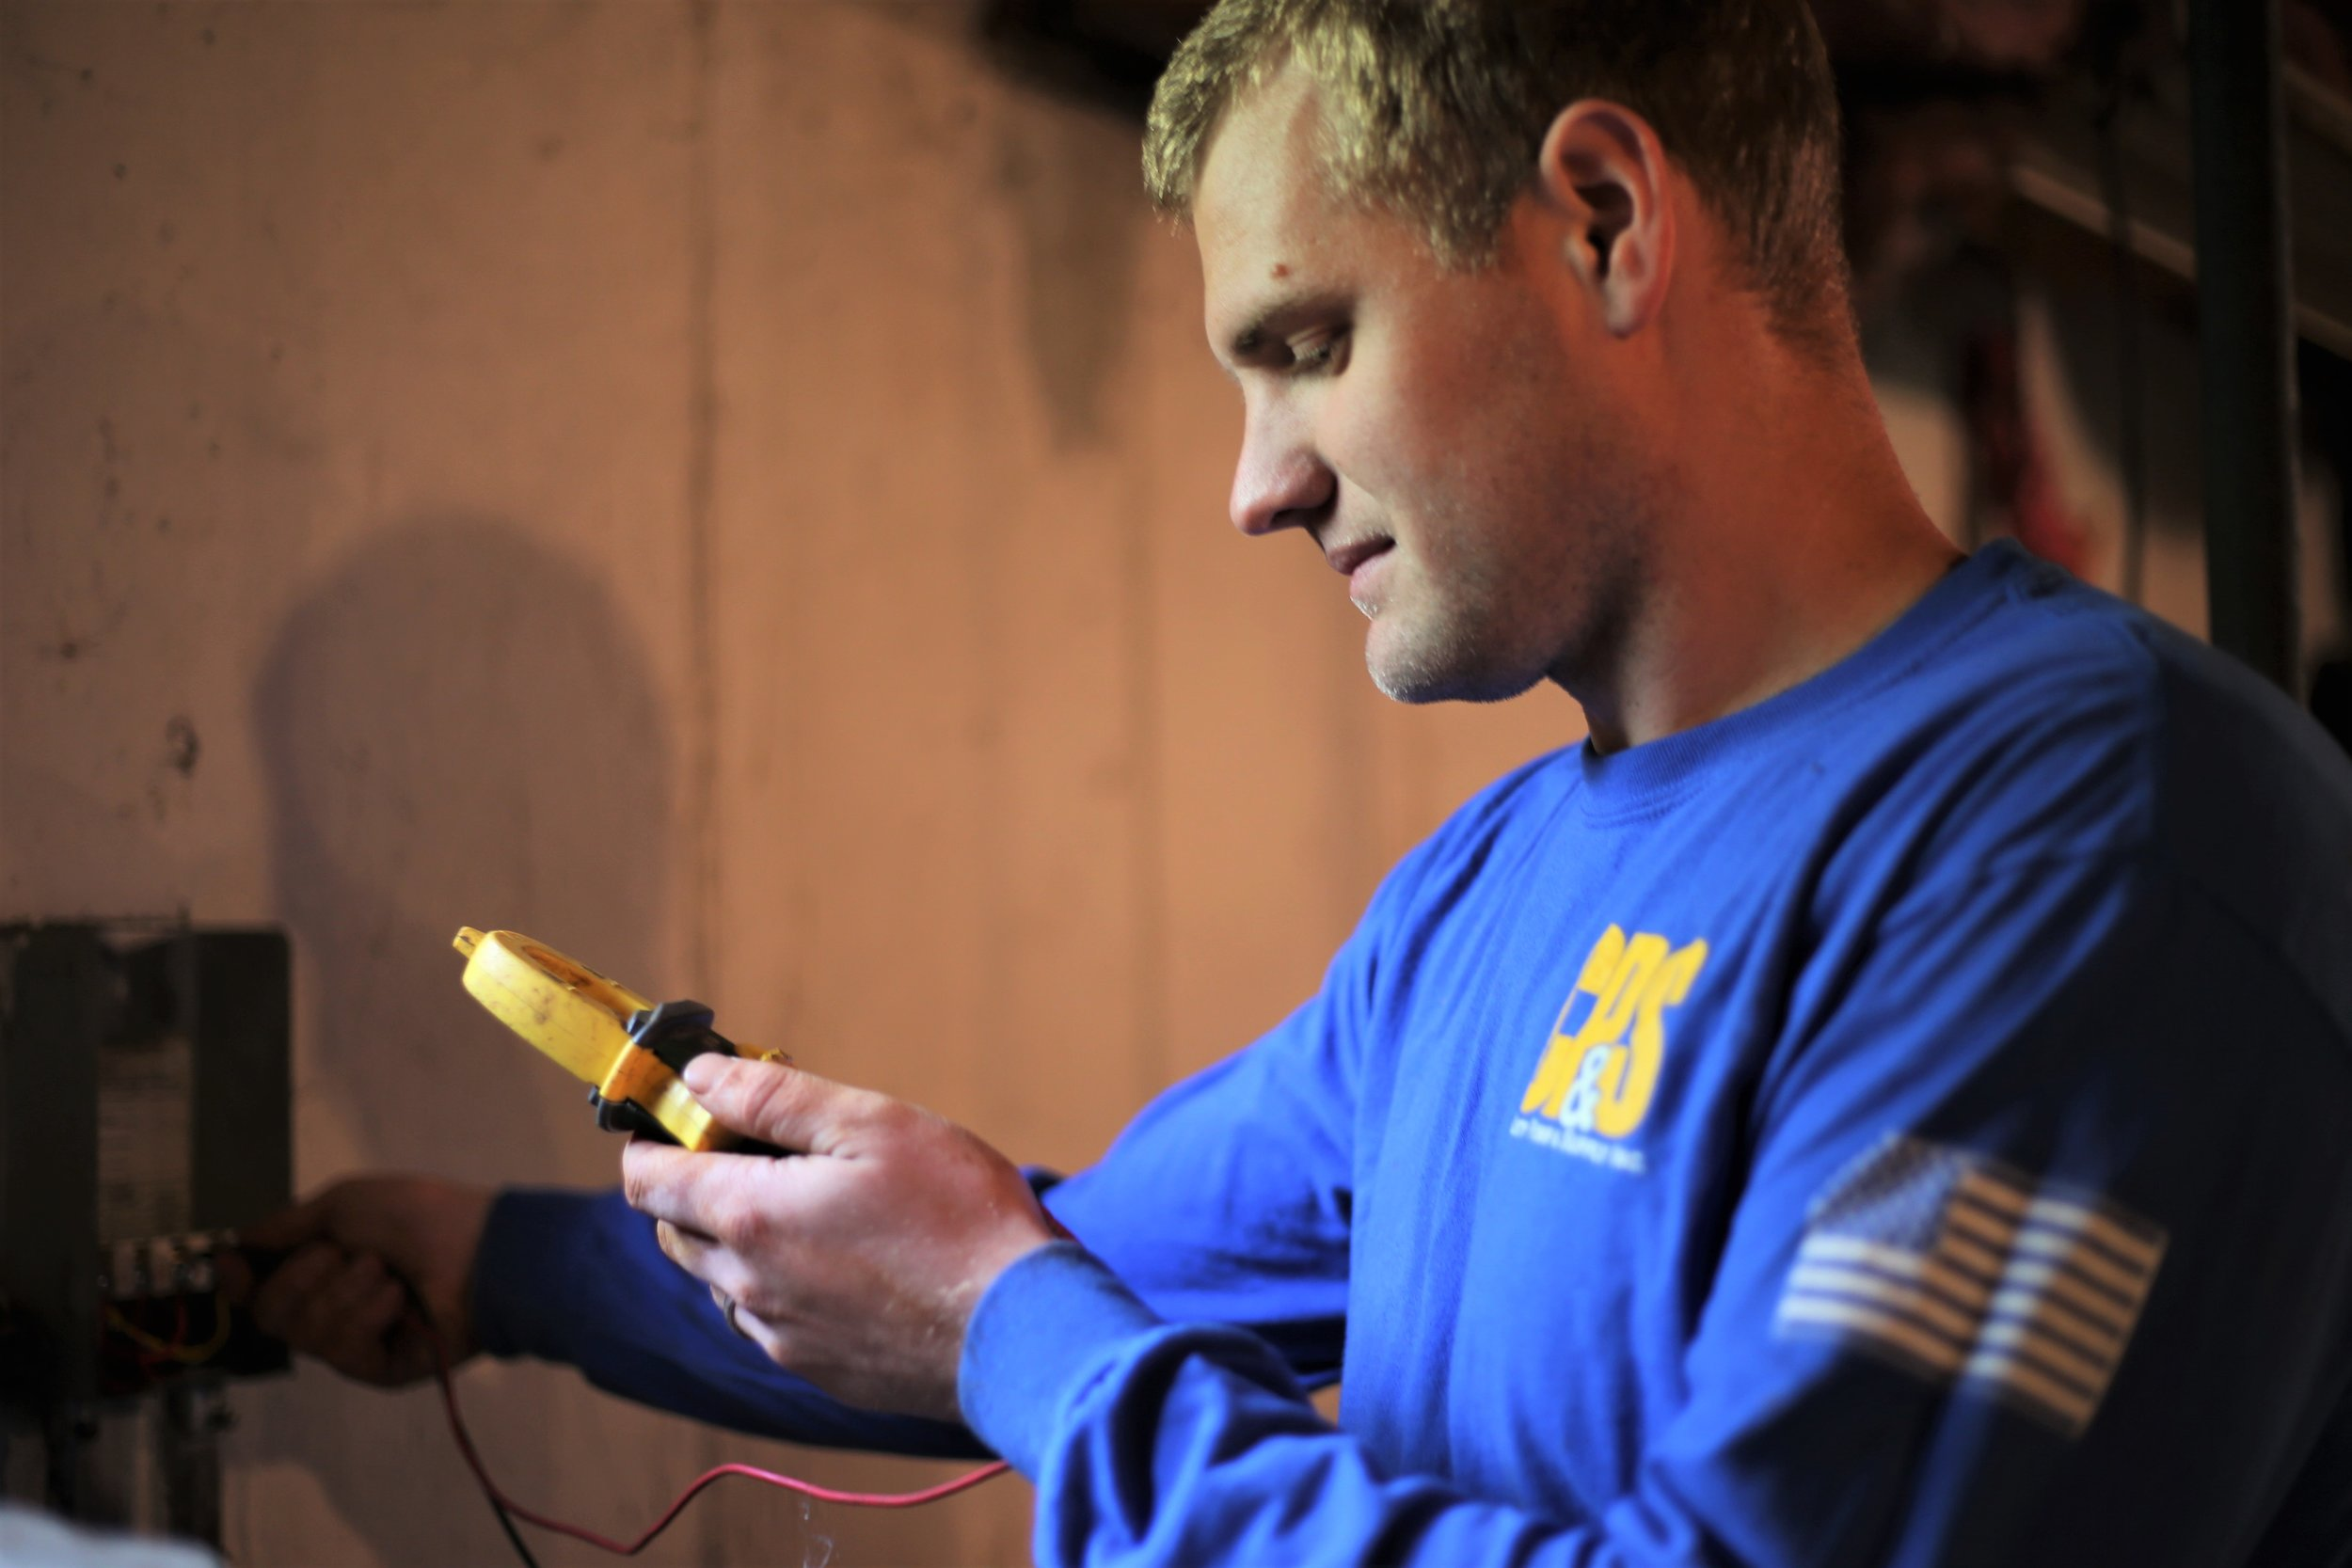 Doug inspects the power during a service call.